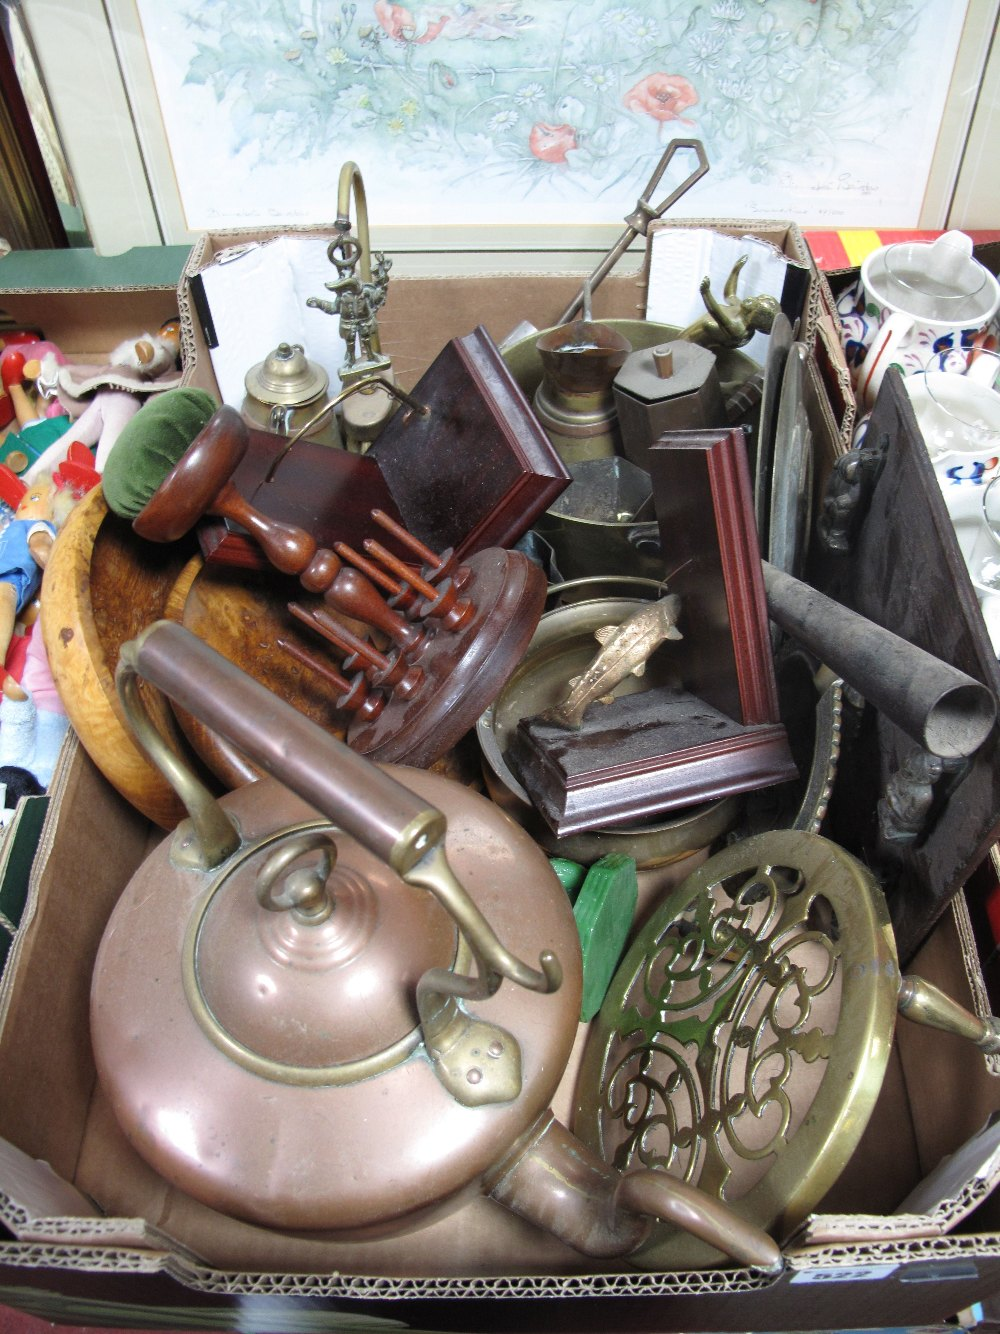 Lot 522 - Anglers Book Ends, jam pan, copper kettle, bobbin stand, etc:- One Box